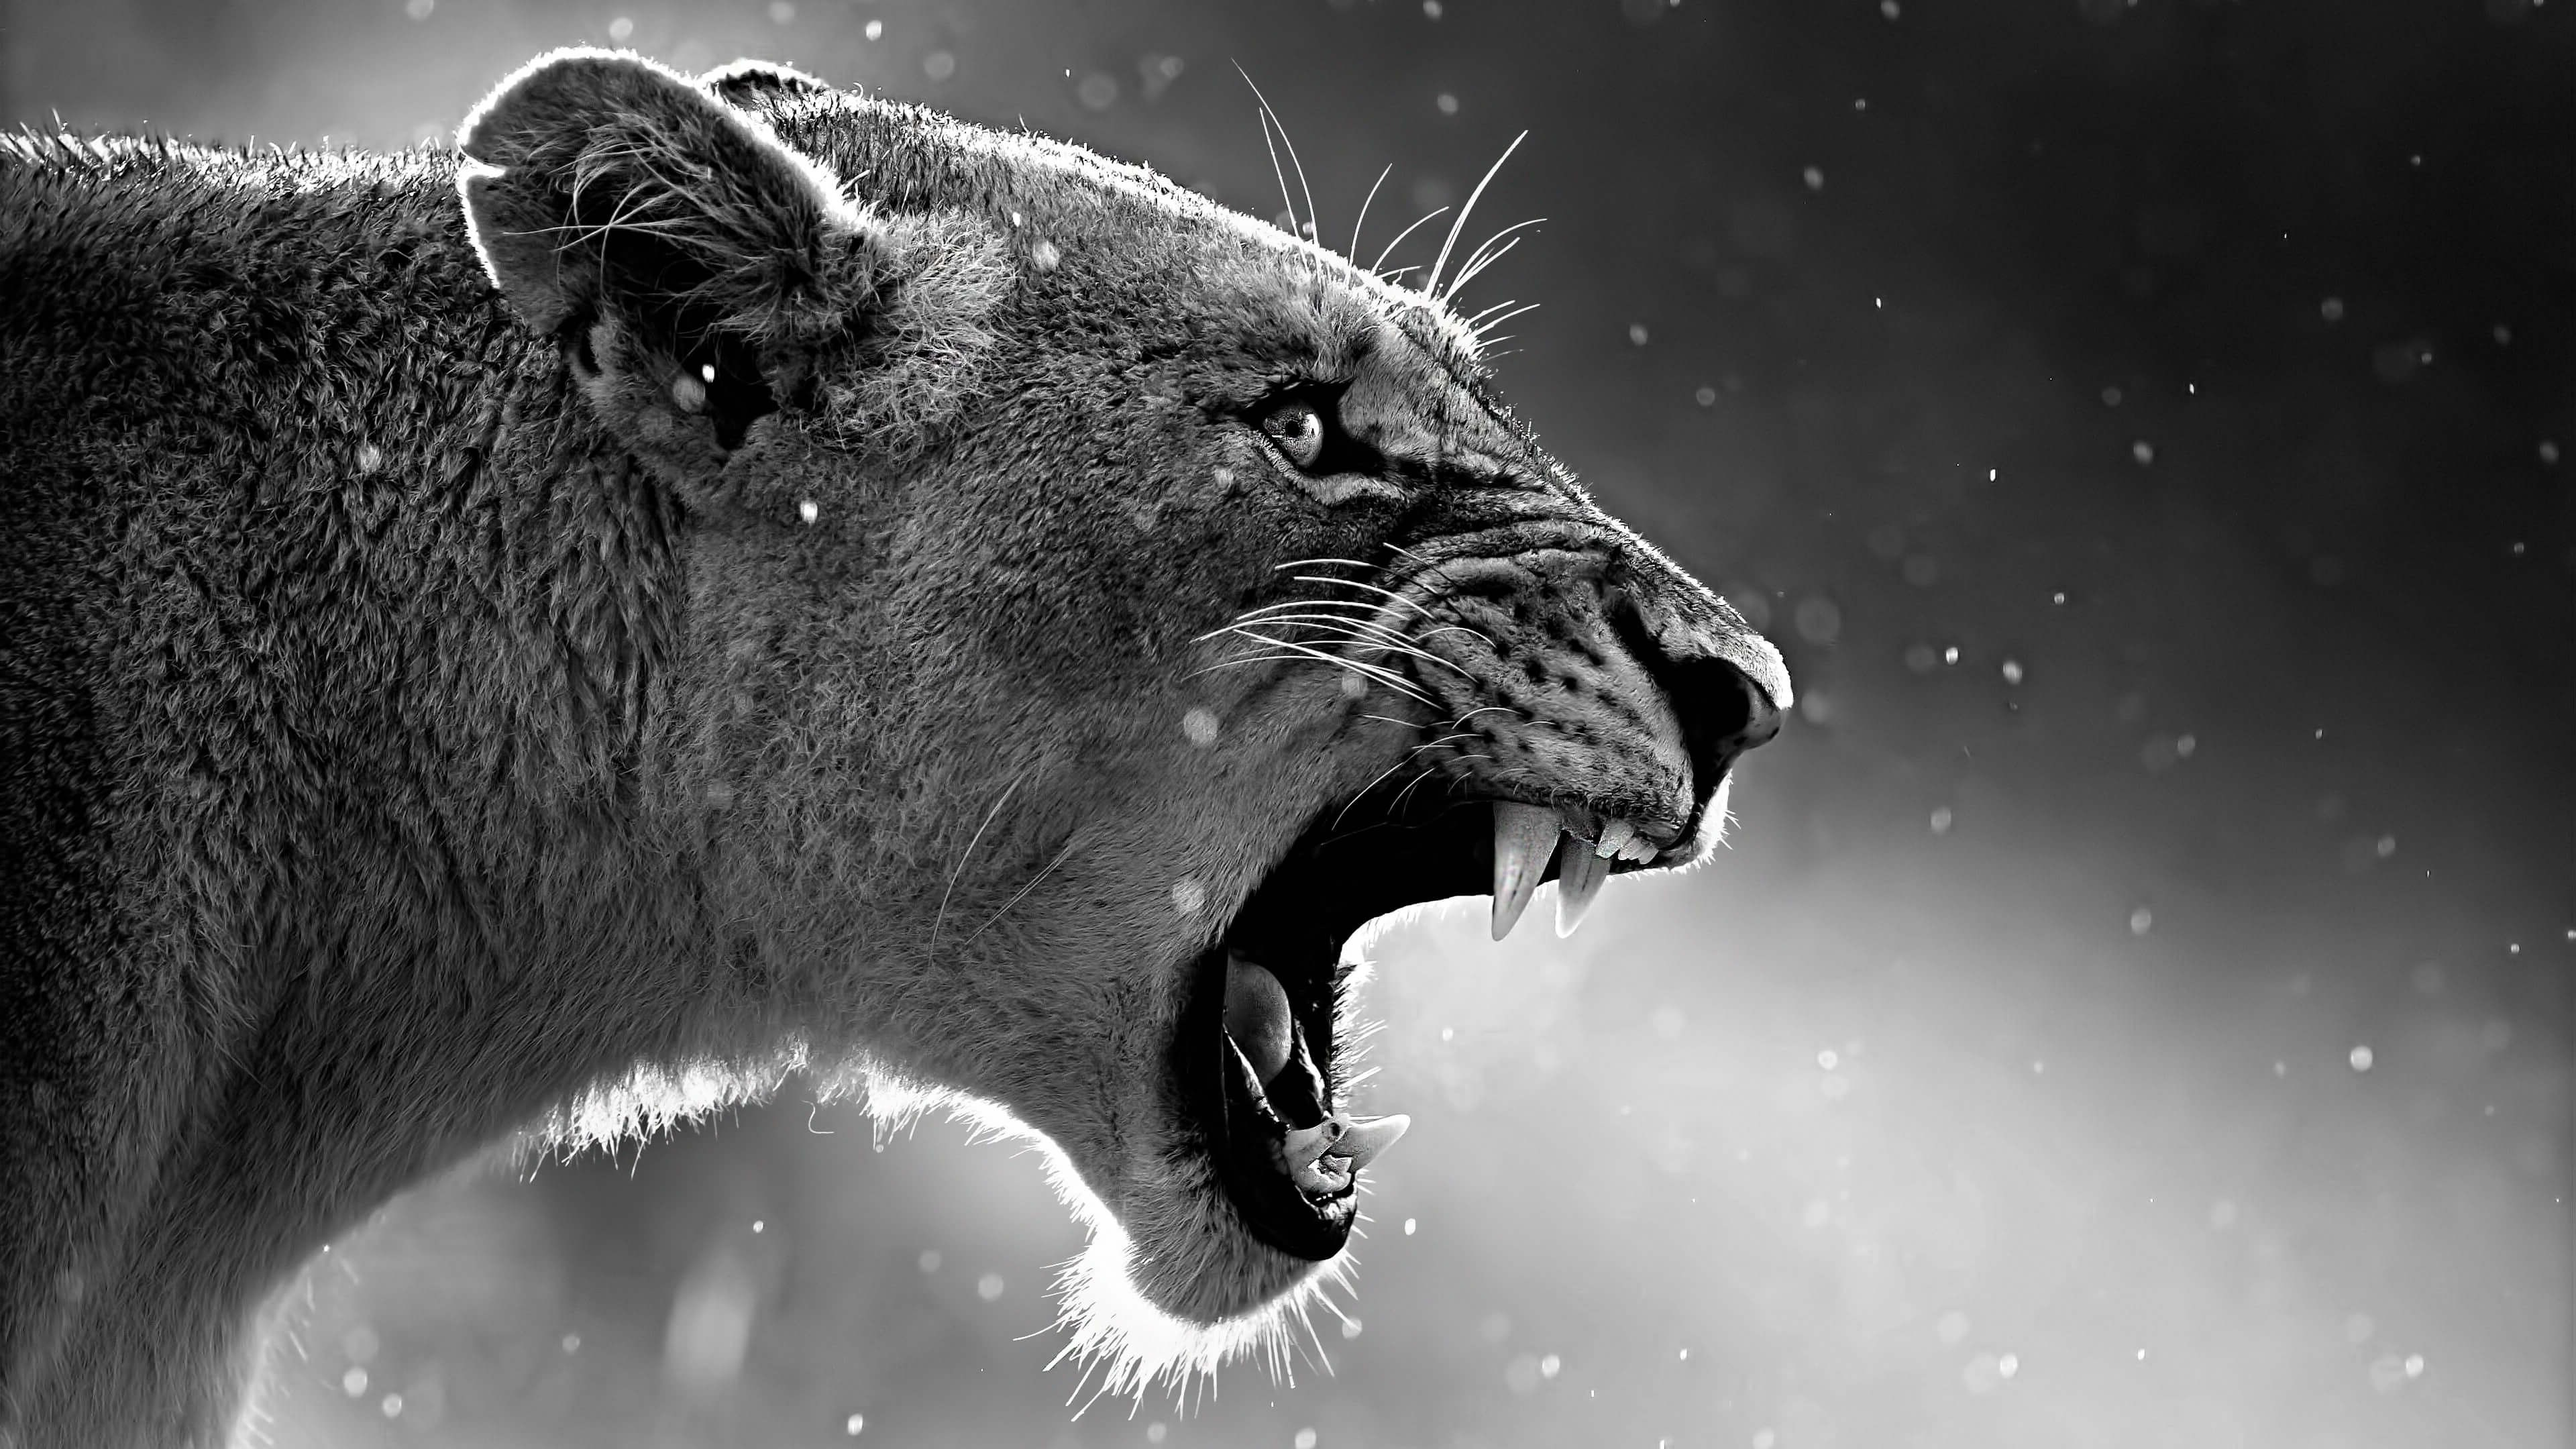 Lion Roaring, HD Animals, 4k Wallpapers, Images